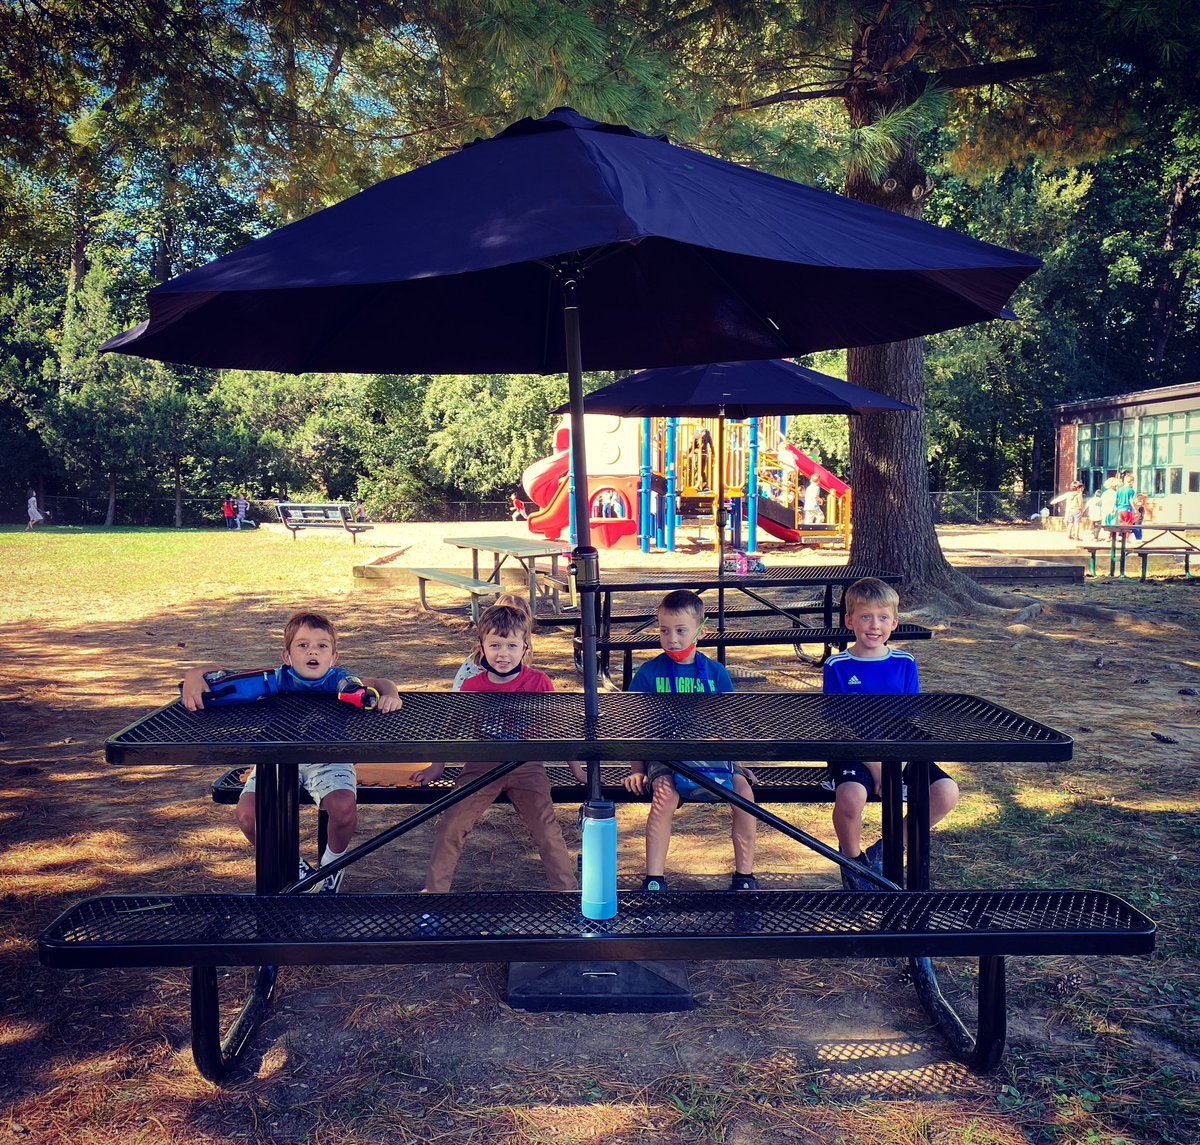 Kindergarten loves the new picnic tables and umbrellas! <a target='_blank' href='https://t.co/Yhk5uN7wby'>https://t.co/Yhk5uN7wby</a>